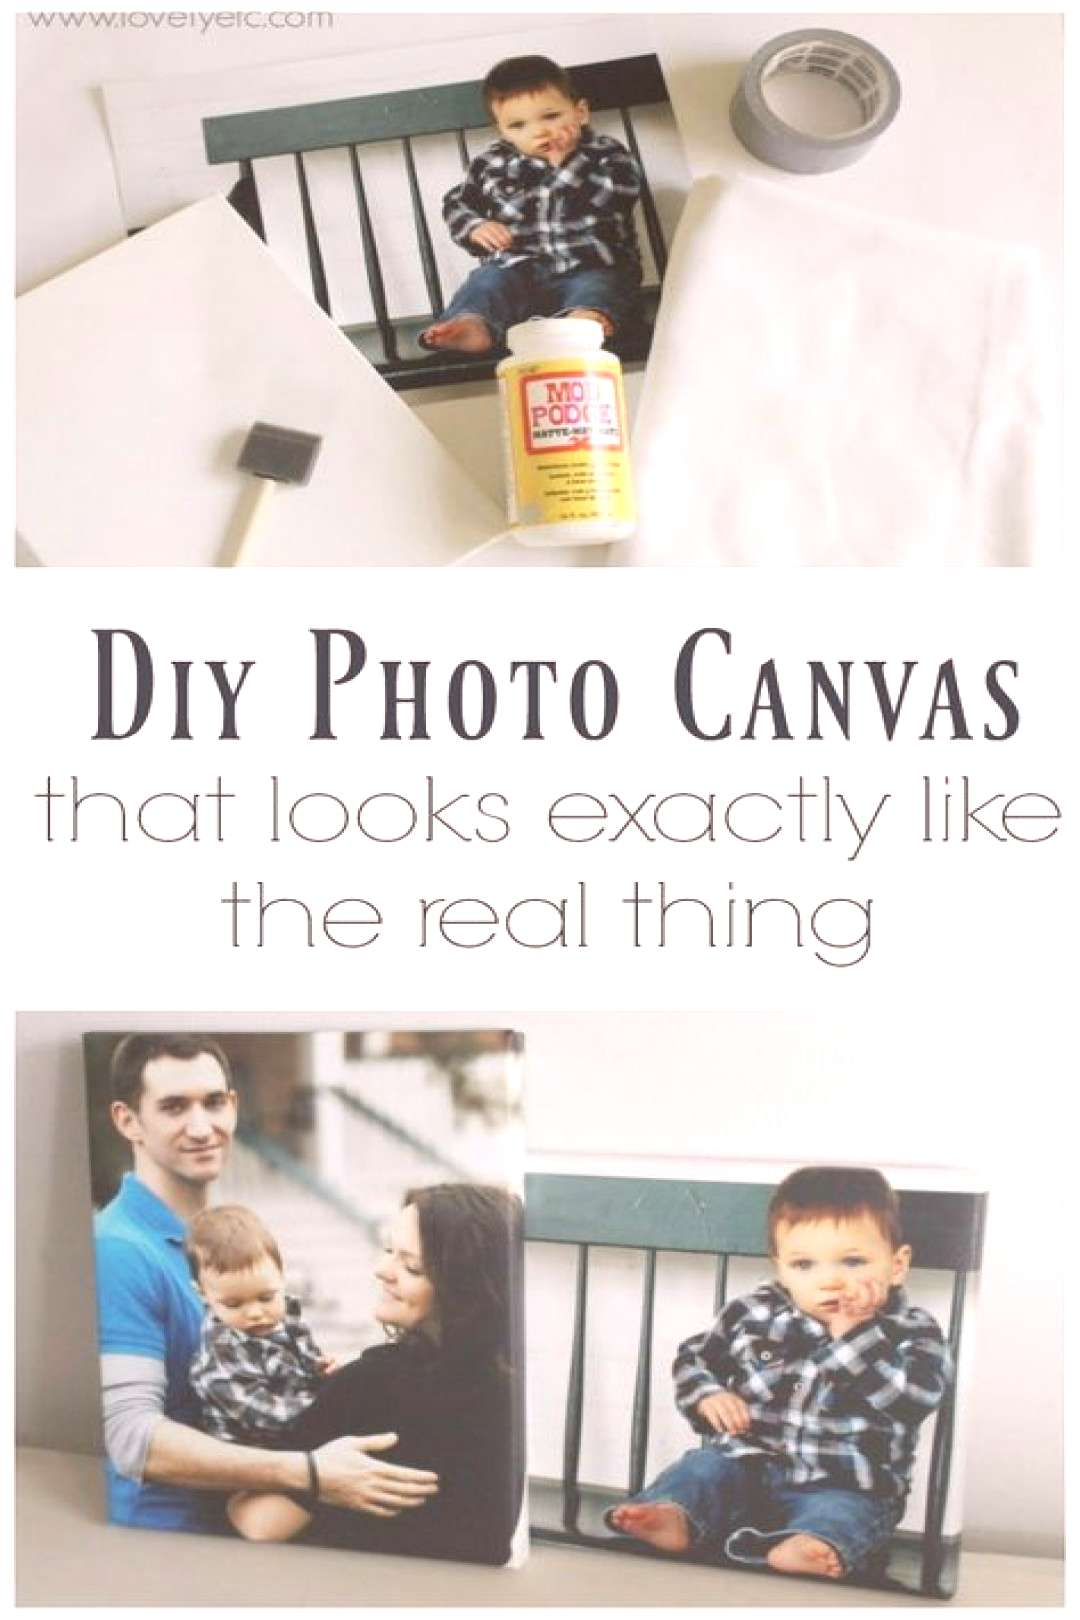 DIY photo canvases that look just like the real thing with real canvas texture and gallery wrapped